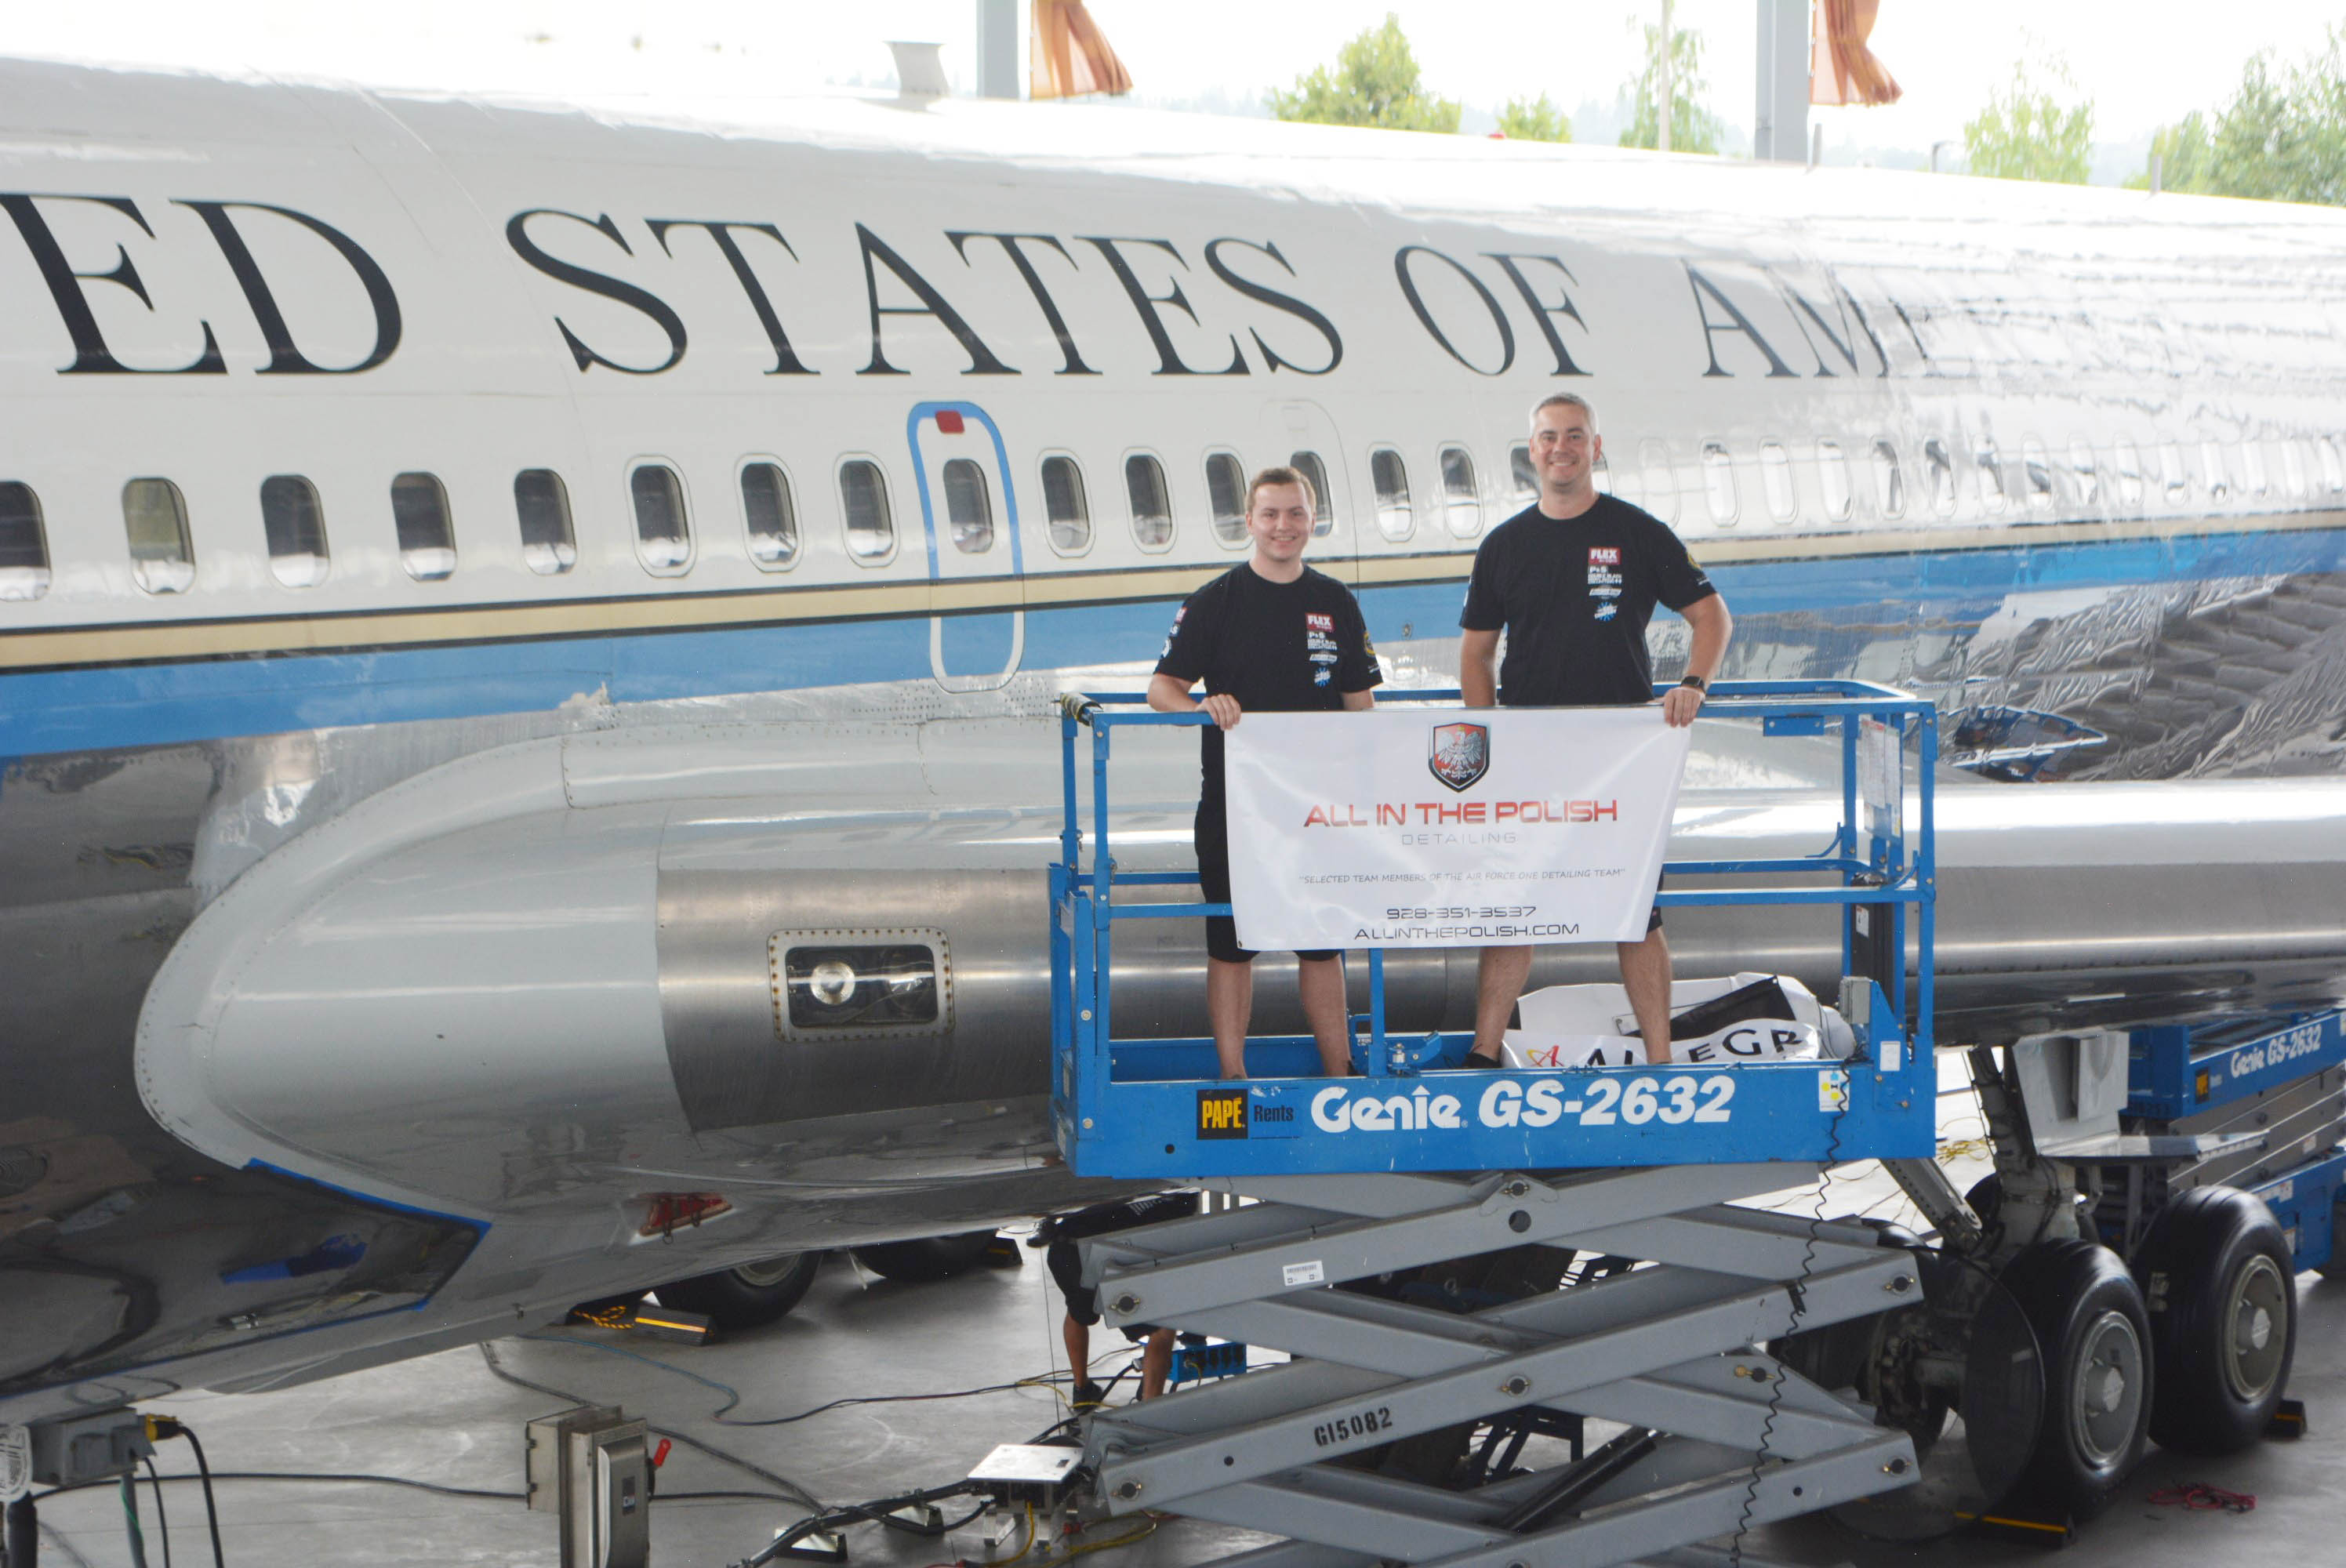 2e08ac183c8ce2 Camp Verde's 'Two Robs' bring spit-shine polish to Air Force One Detailing  Team